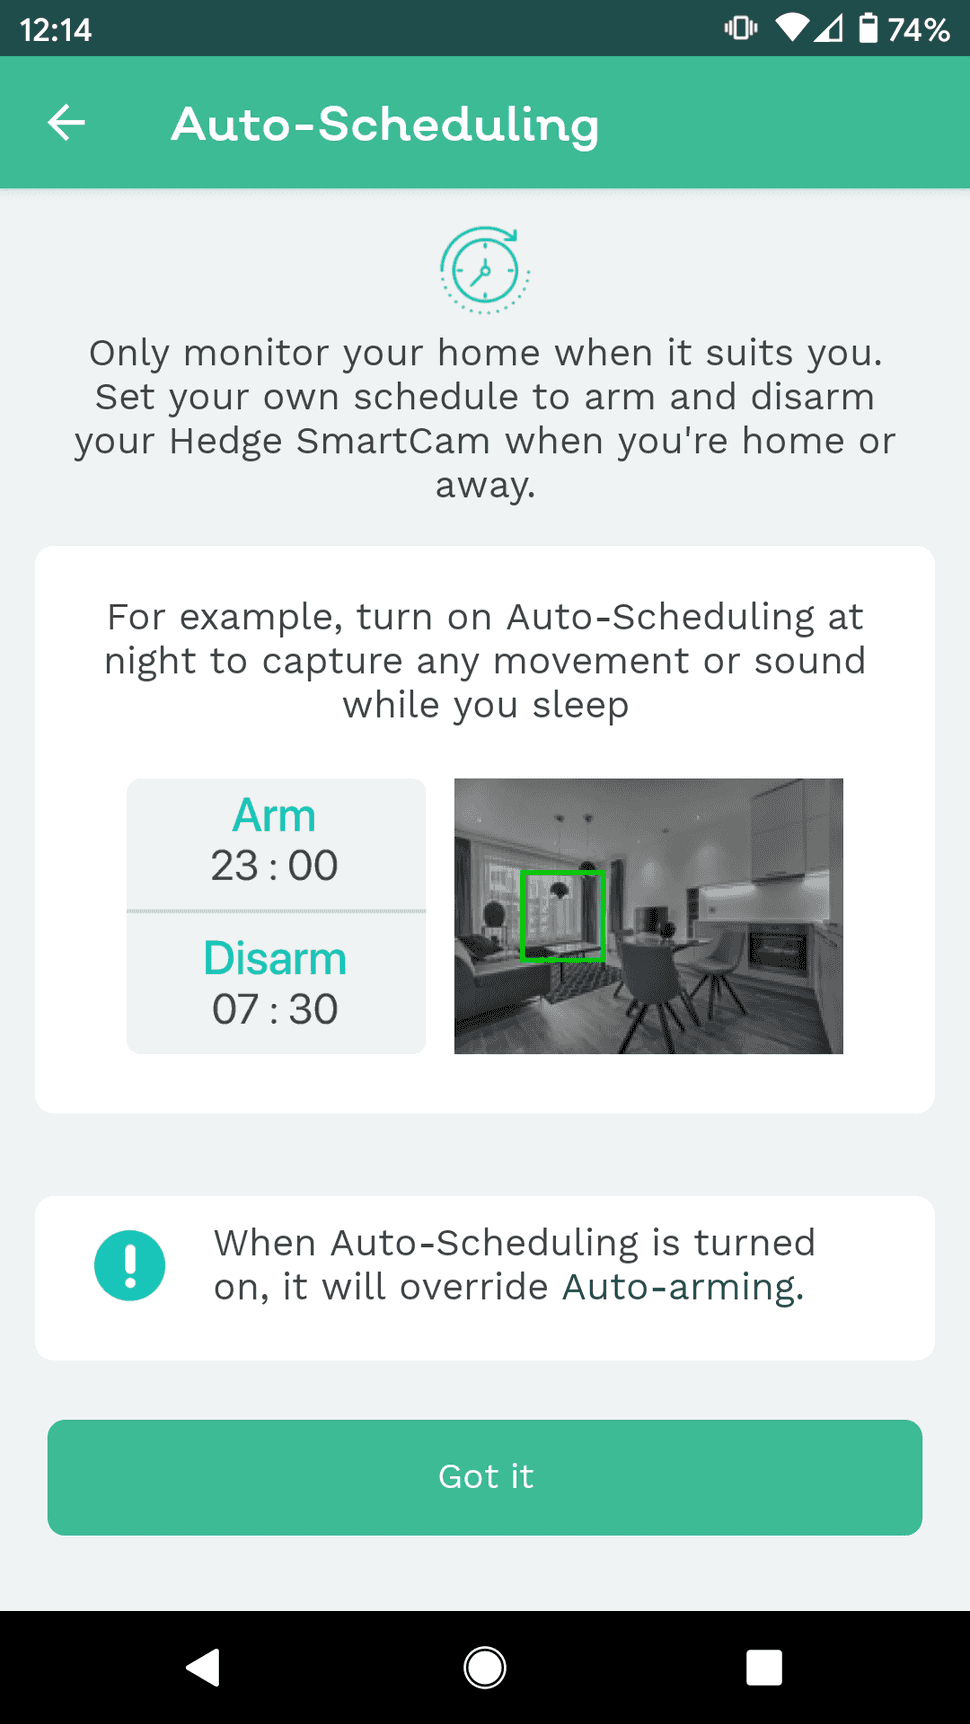 auto-scheduling with video